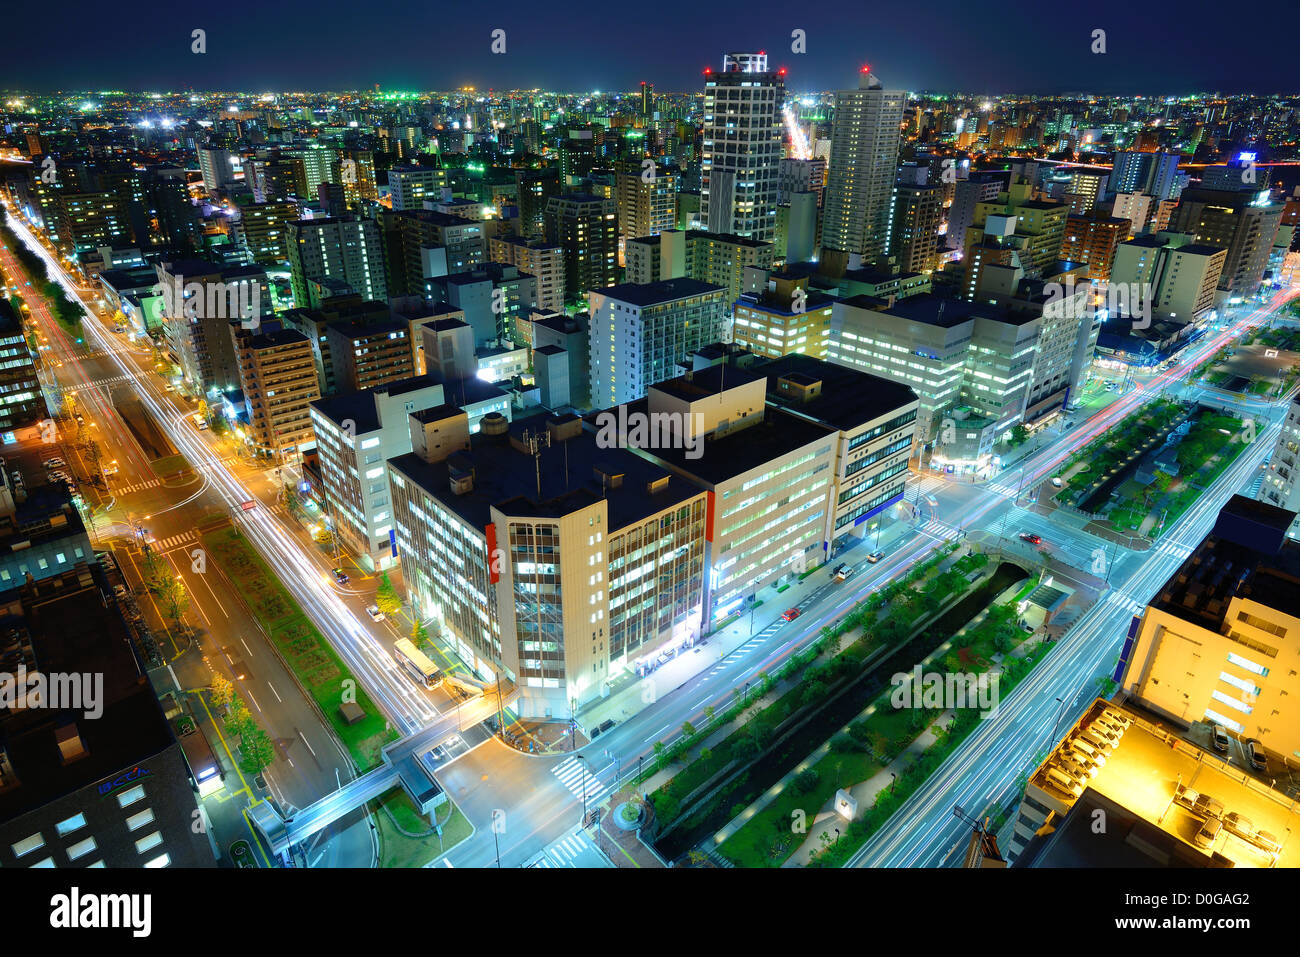 Downtown Sapporo, Japan skyline. - Stock Image